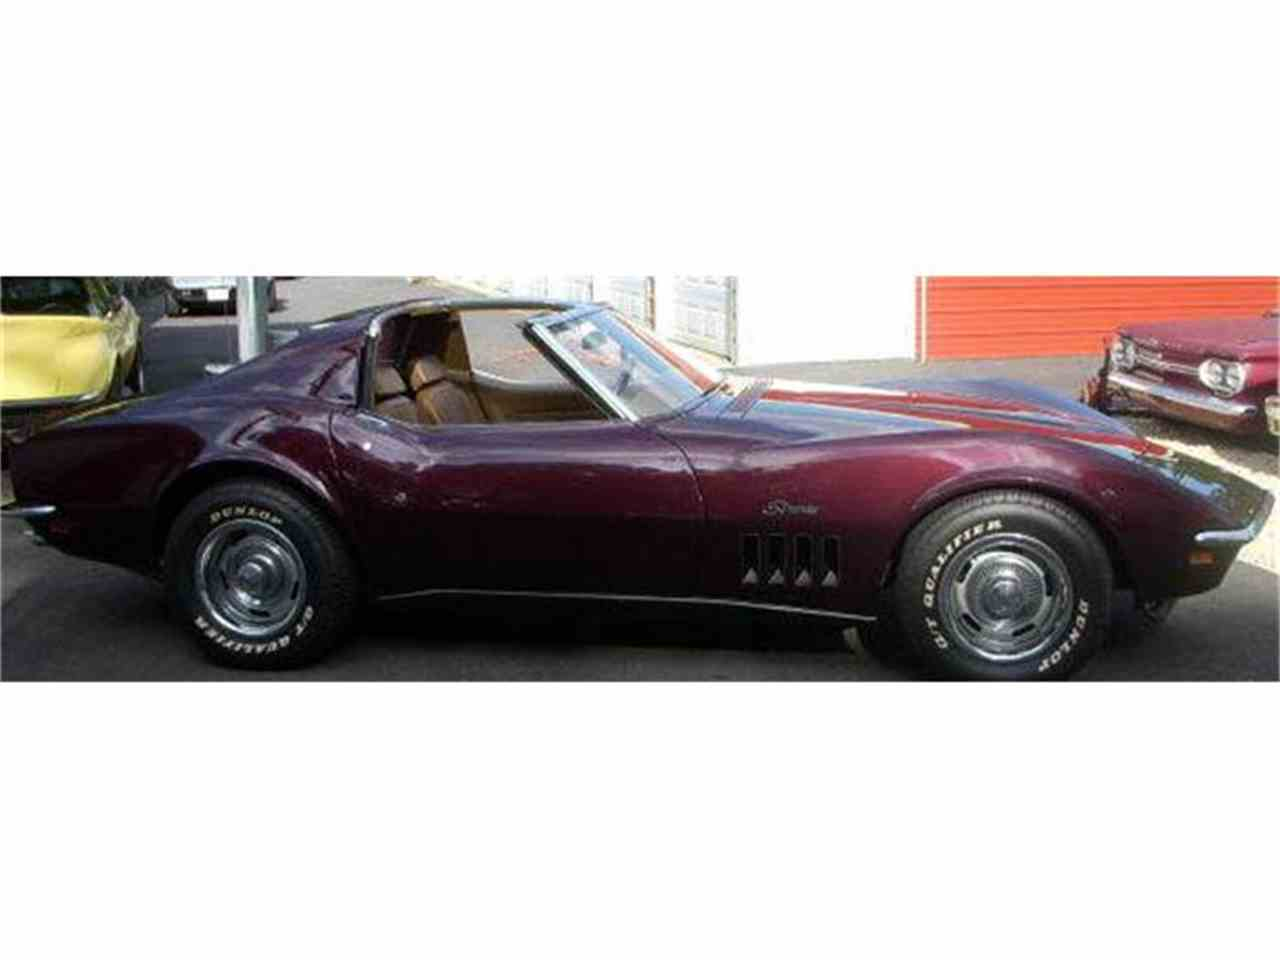 Large Picture of 1969 Chevrolet Corvette located in Virginia - $19,000.00 Offered by a Private Seller - 5MKF